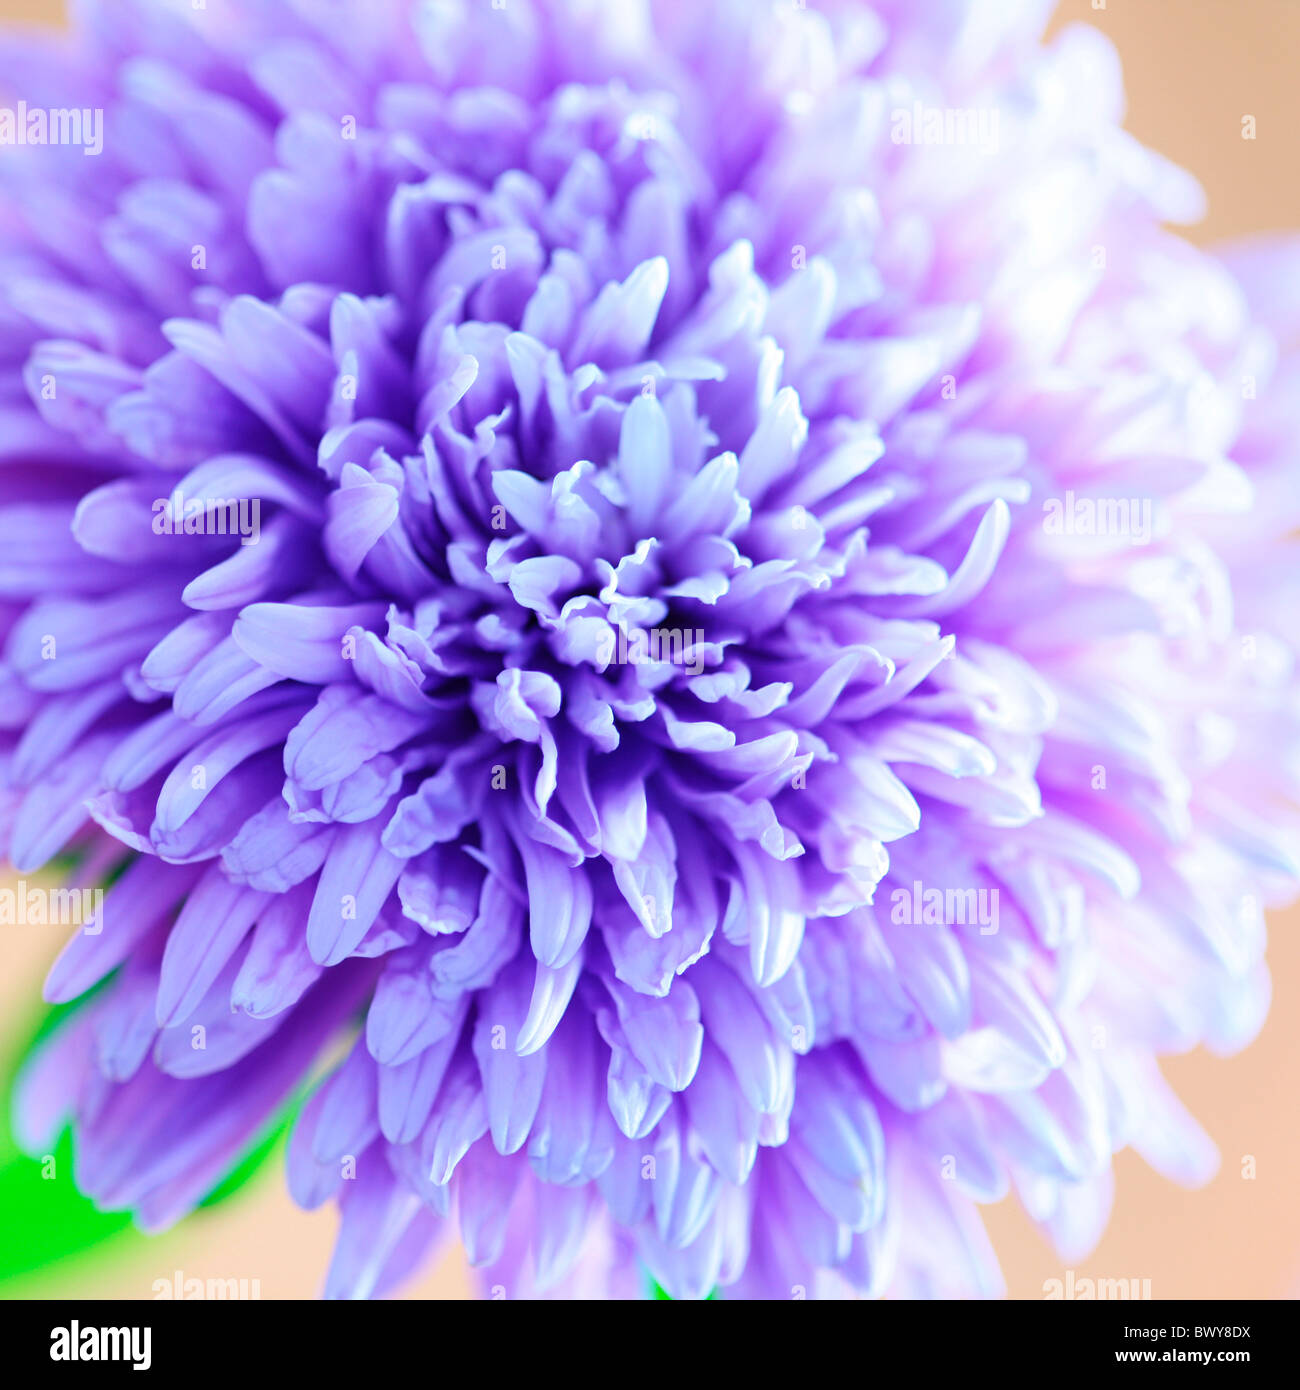 Gorgeous soft focus aster bleu lilas en pleine floraison Jane-Ann Butler Photography JABP867 Photo Stock